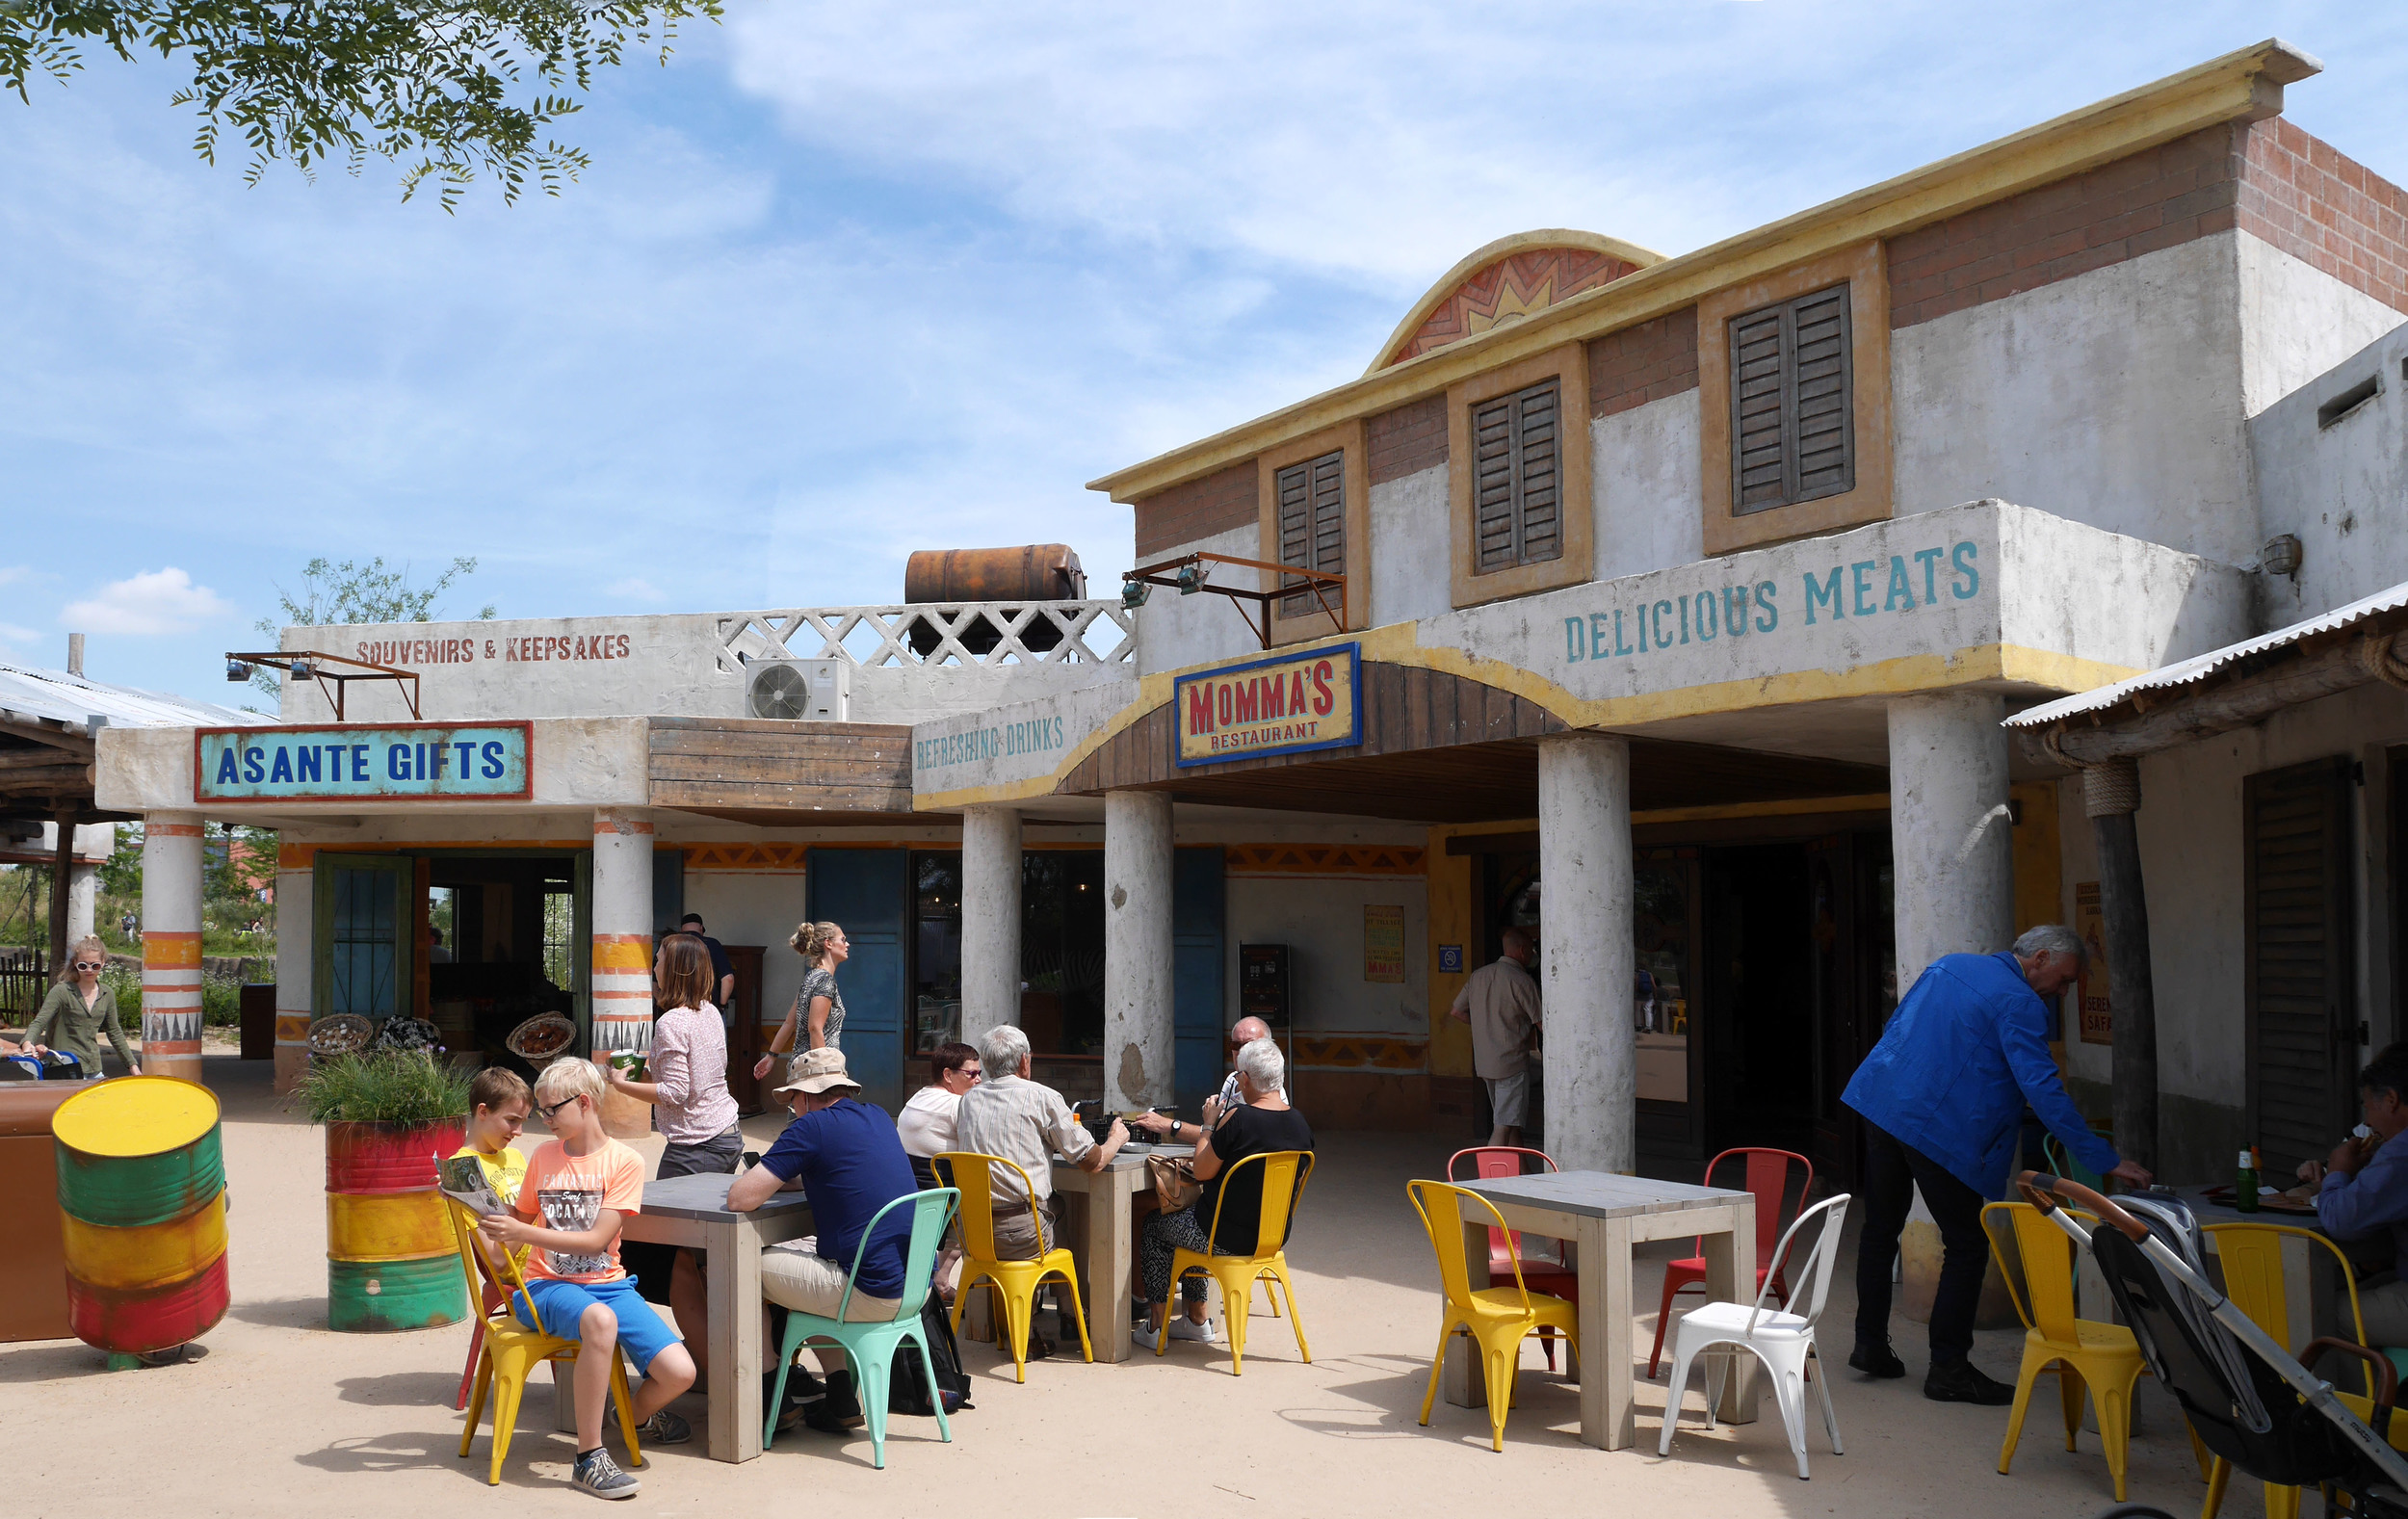 MOMMA'S RESTAURANT WILDLANDS <strong>| Colorful eatery that celebrates the styles and flavors of a traditional savanna village</strong>